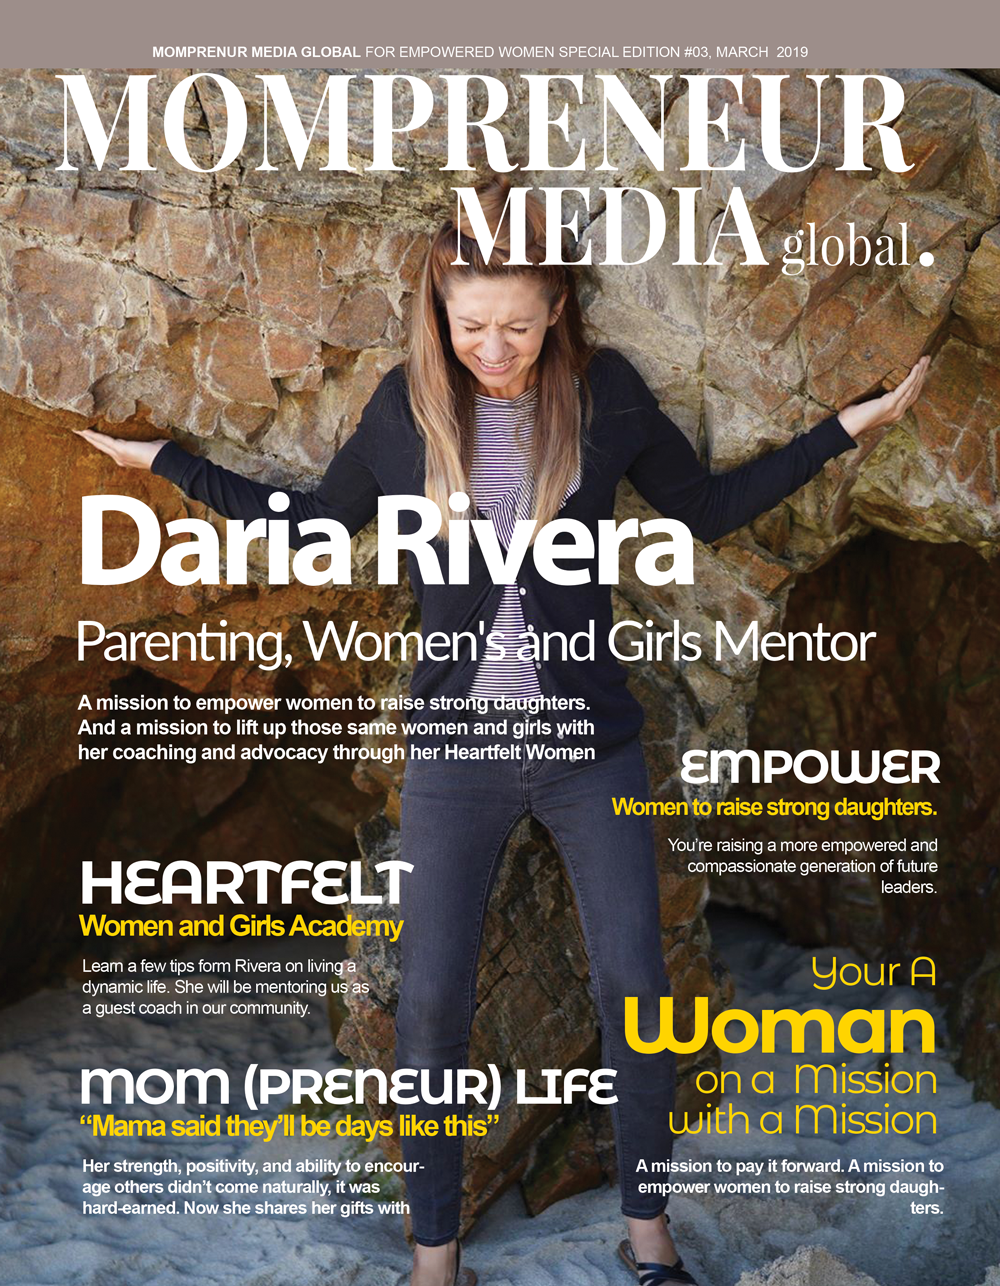 Daria Rivera Magazine Cover 2019 Mompreneur Media Global